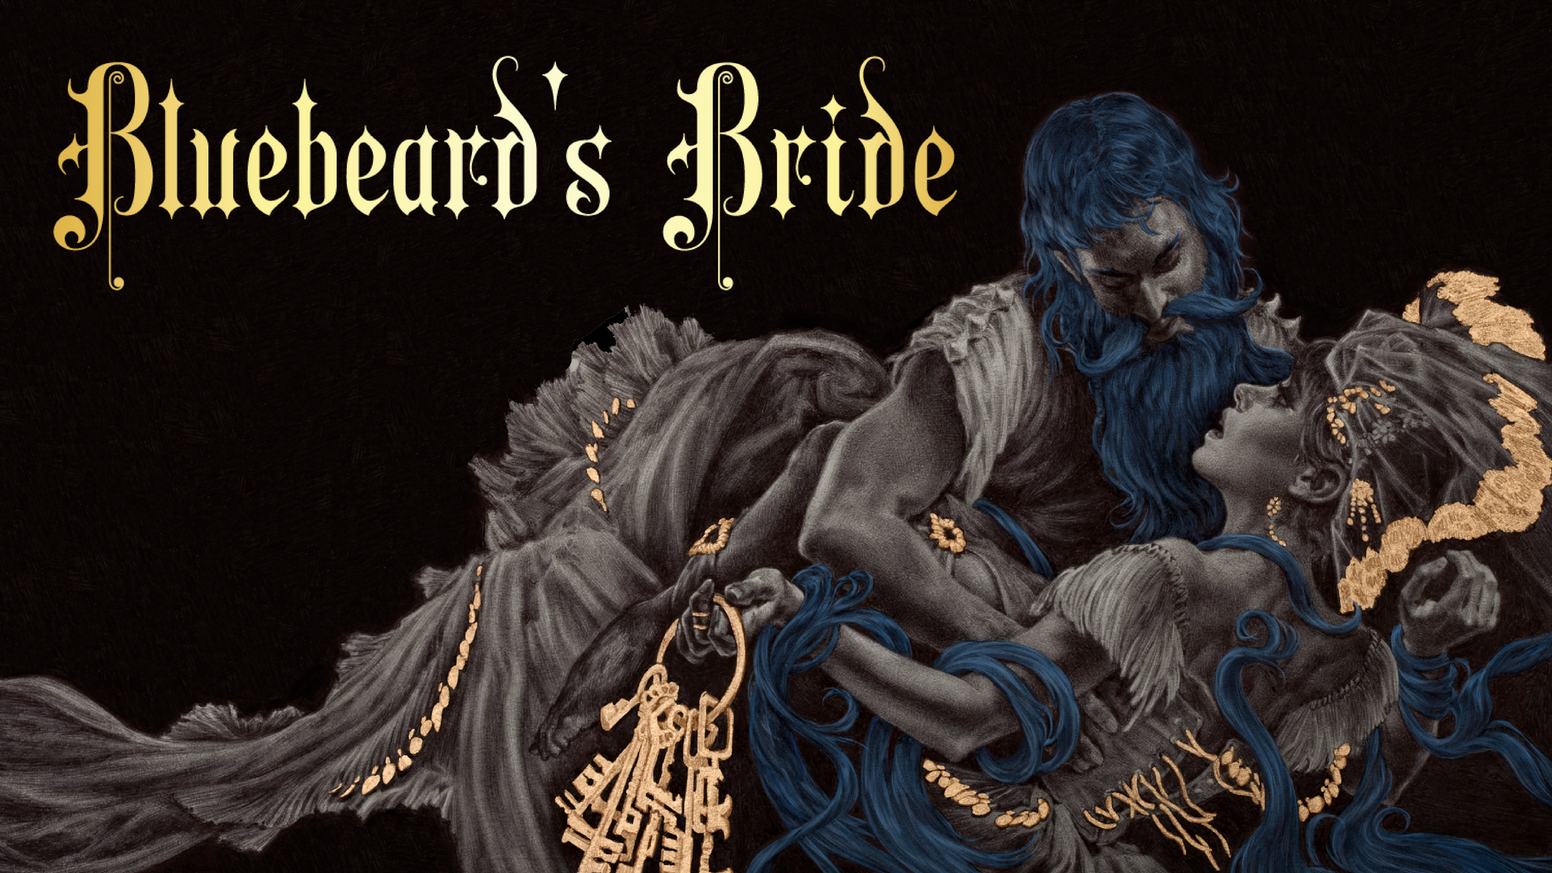 Bluebeard's Bride is a horror tabletop RPG in which you play aspects of the Bride's psyche investigating your husband's haunted manor.